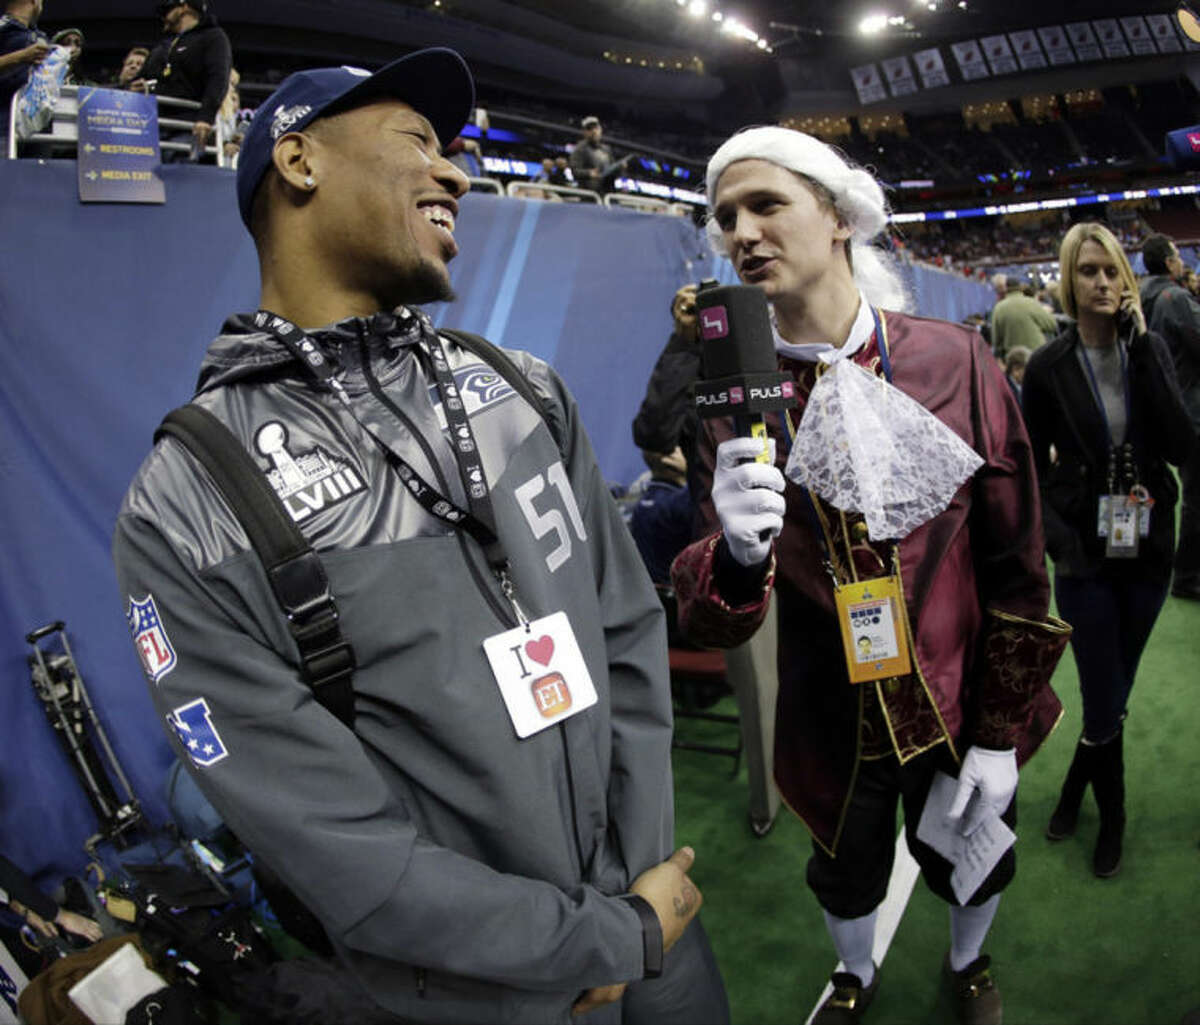 Phillip Hajszan interviews Seattle Seahawks' Bruce Irvin during media day for the NFL Super Bowl XLVIII football game Tuesday, Jan. 28, 2014, in Newark, N.J. (AP Photo/Charlie Riedel)